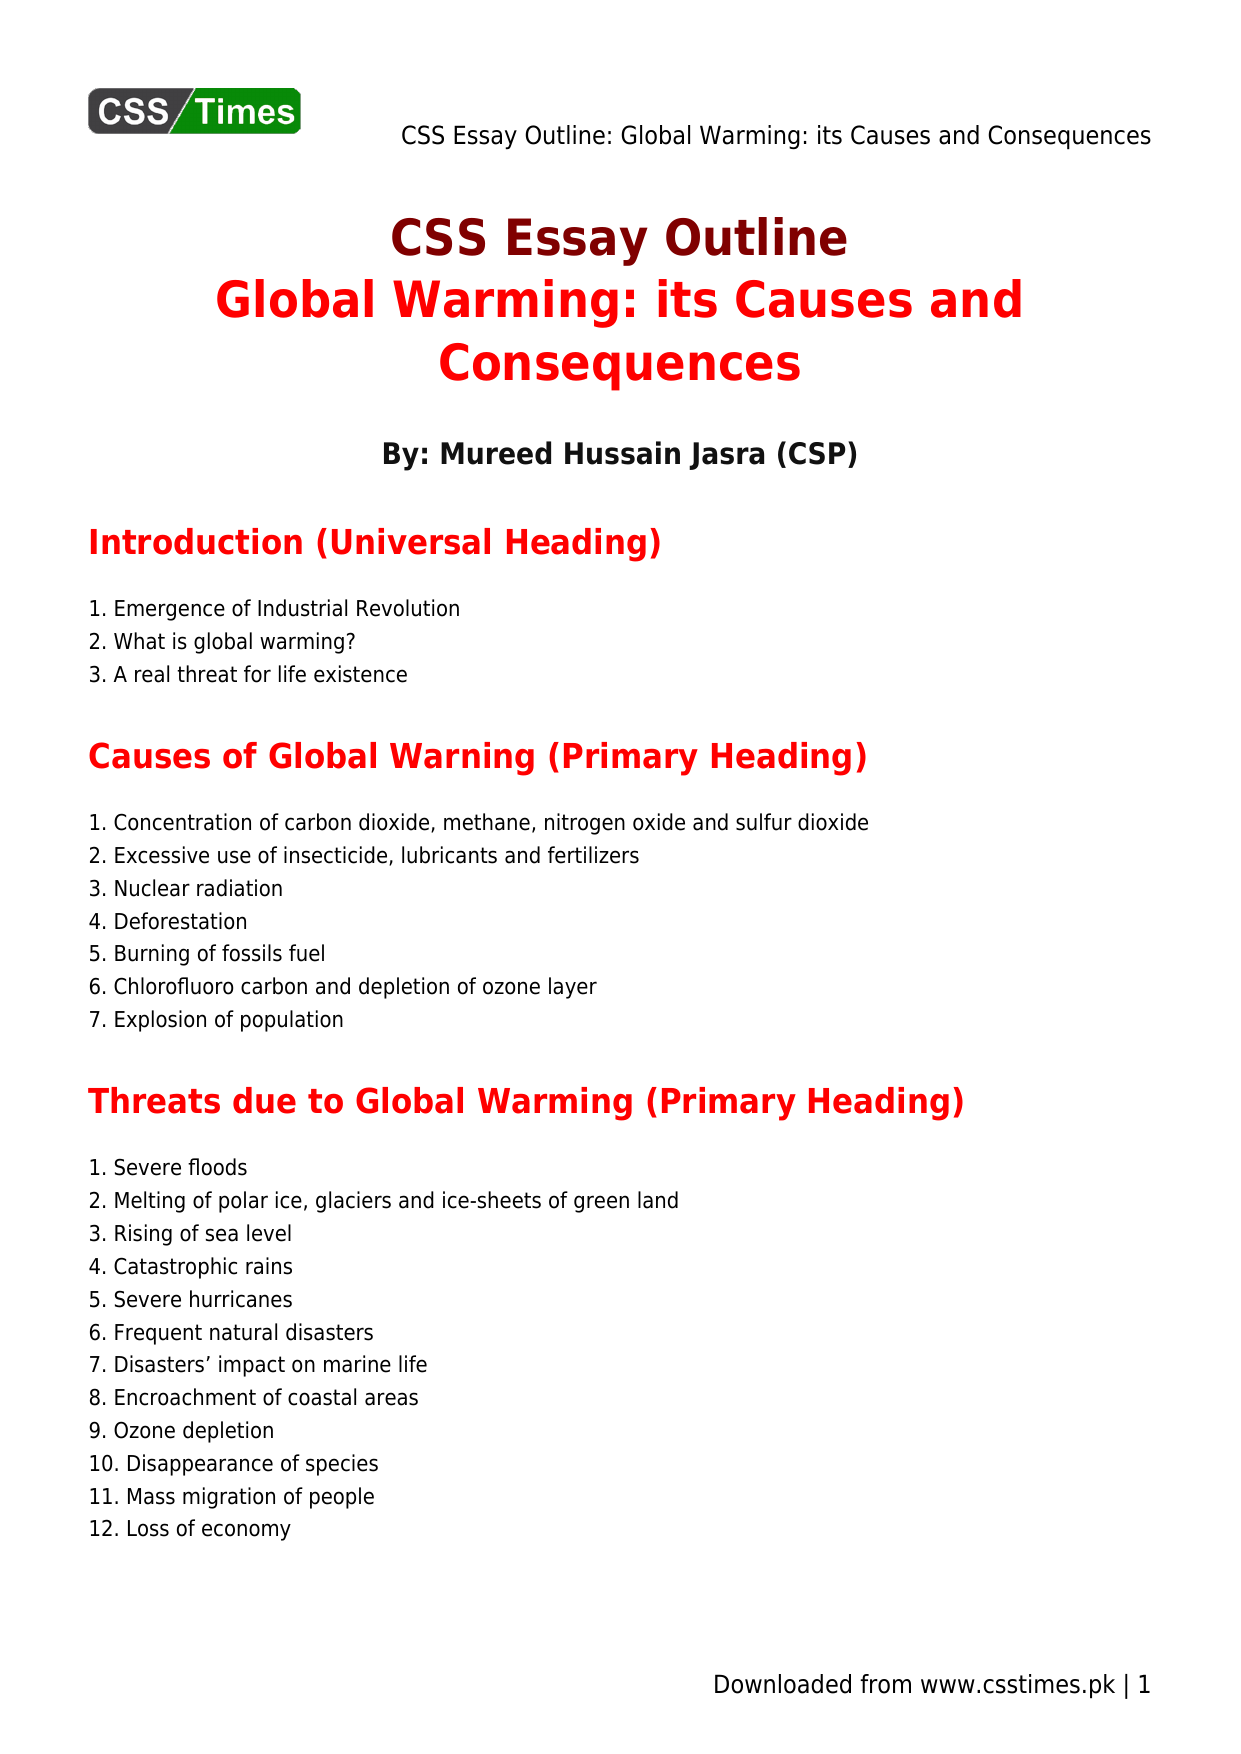 Phd thesis on global warming